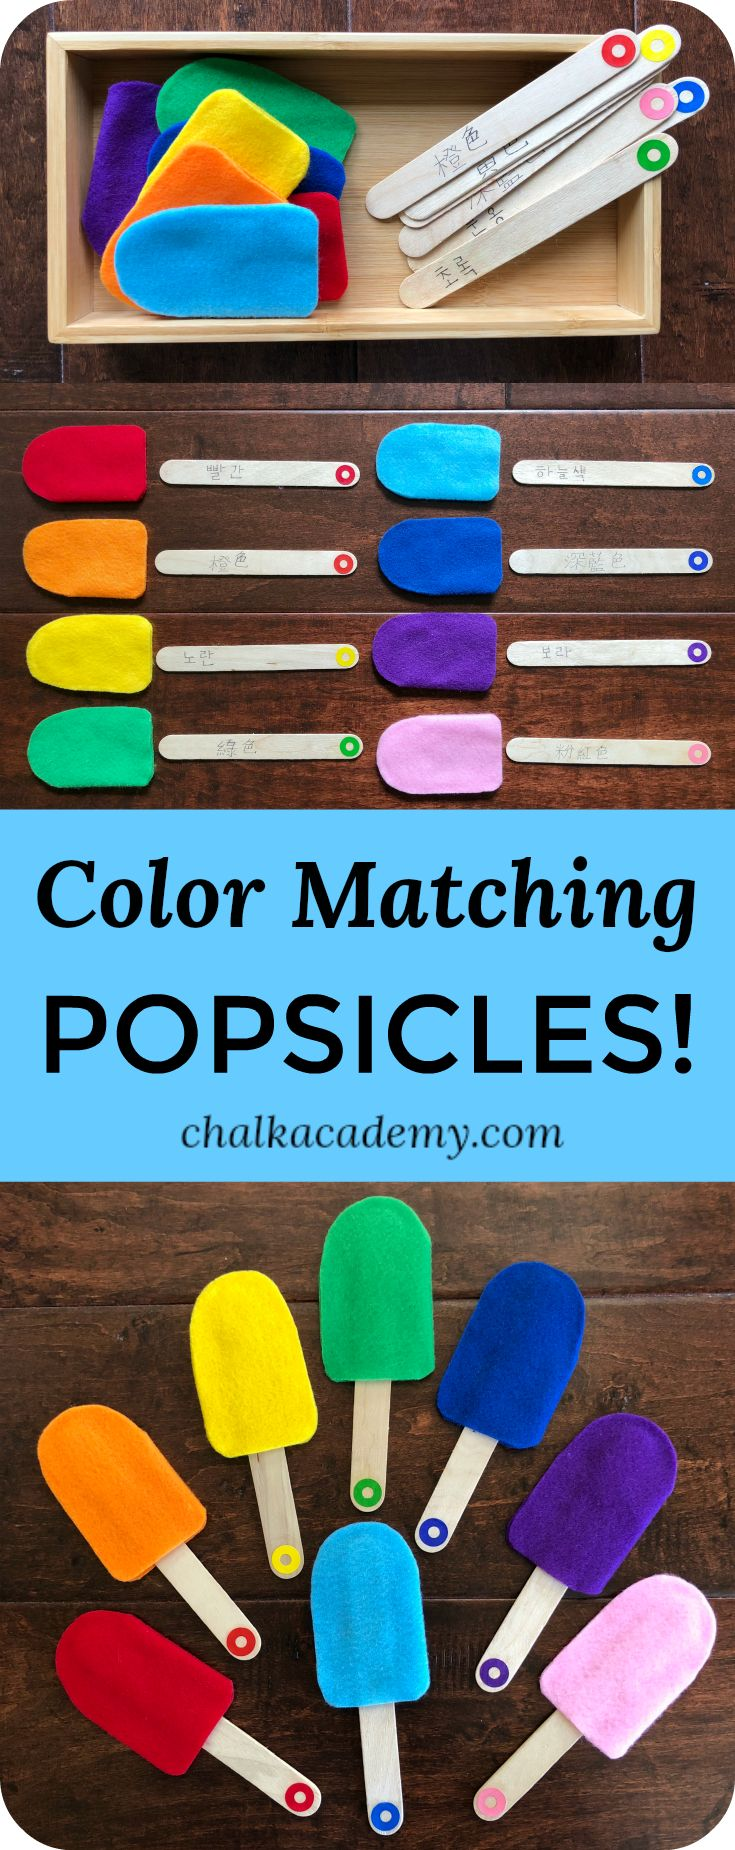 Color Matching Popsicles – Educational Craft for Kids